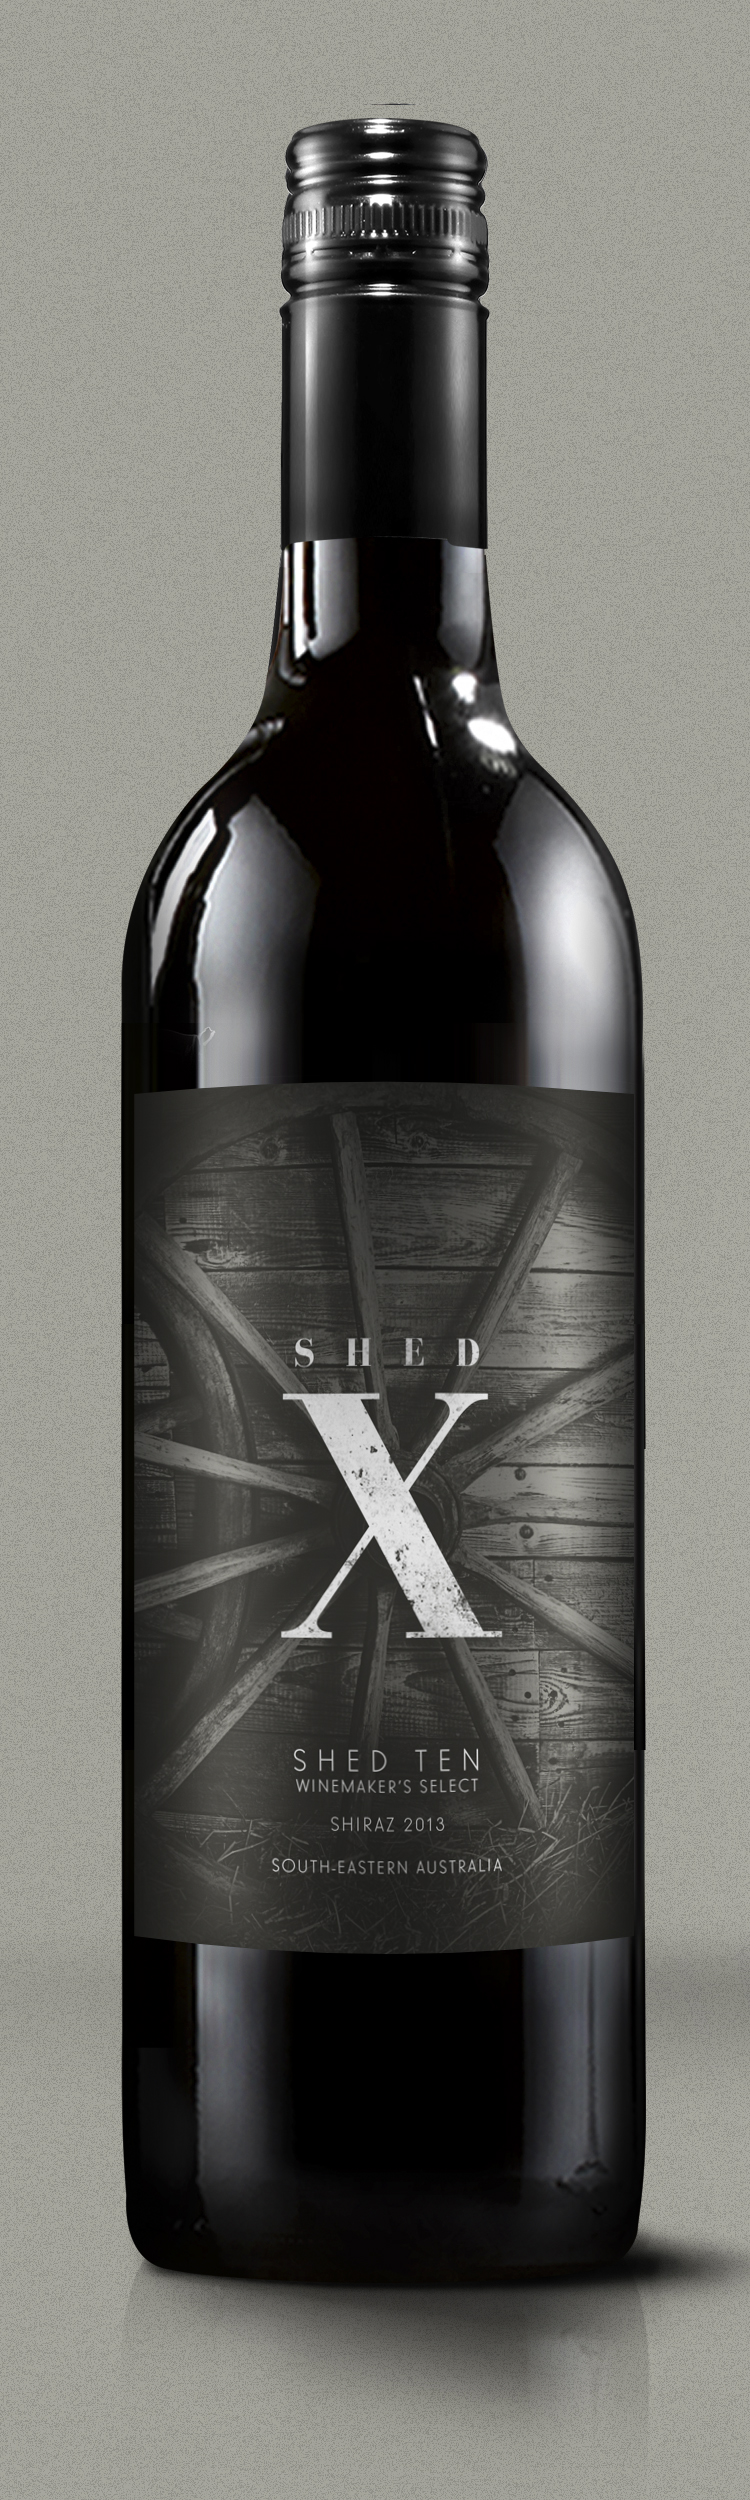 Shed_10_label_bottleshot_1.jpg